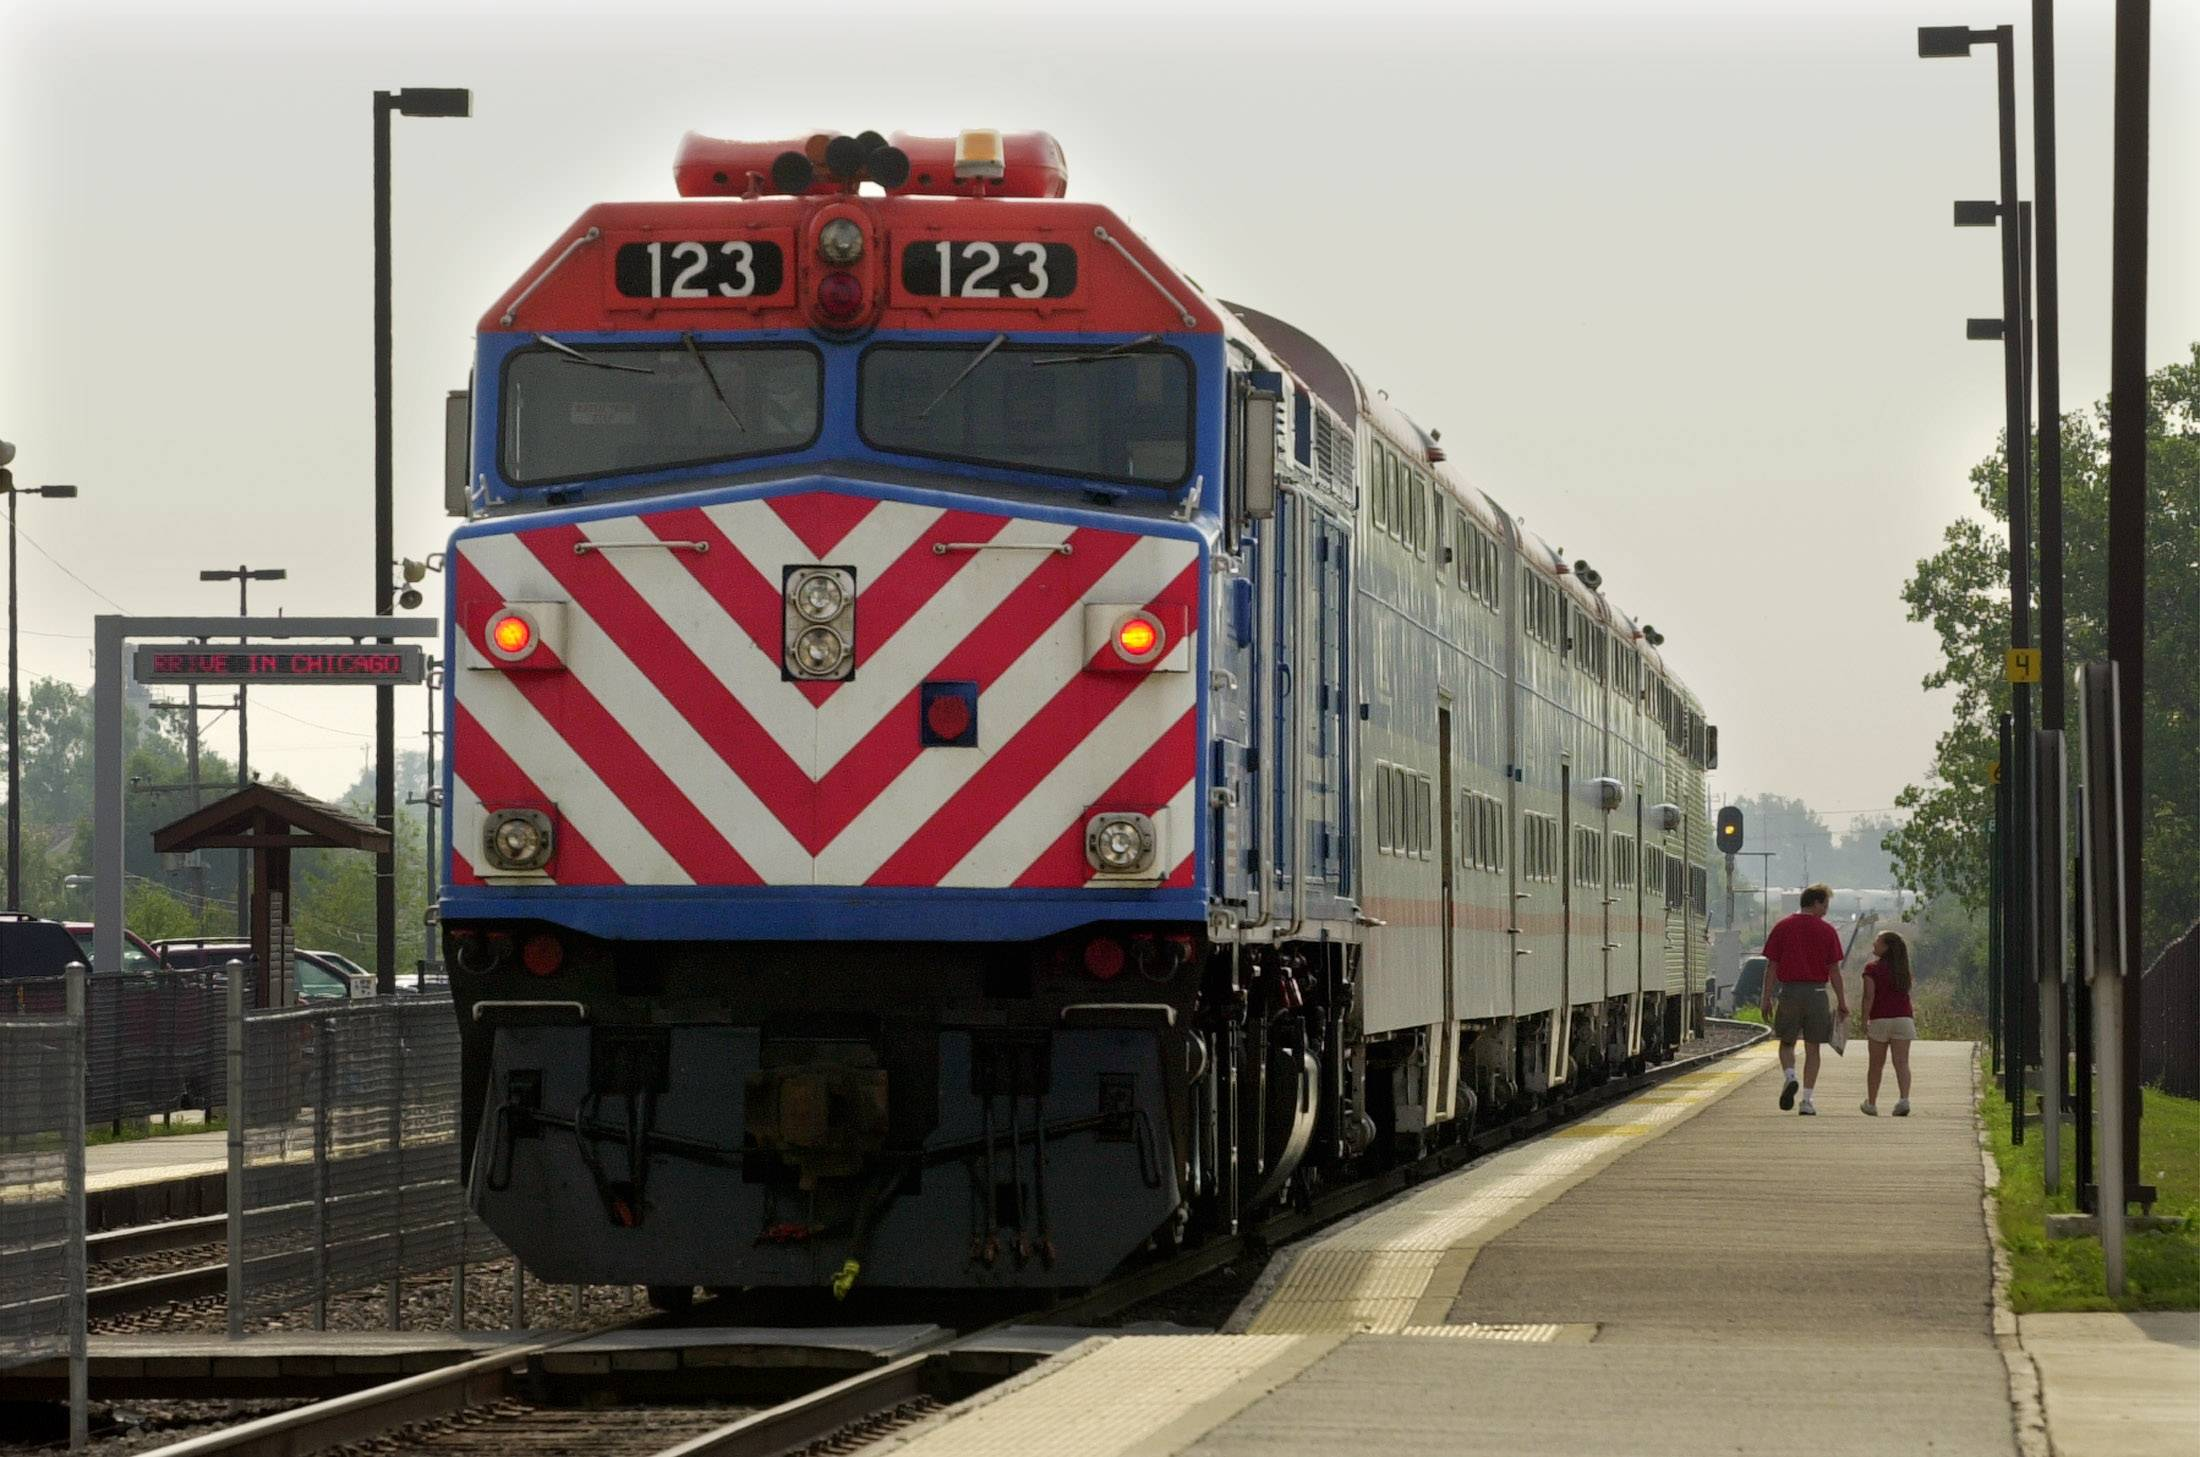 Report: Falsified work logs at Metra caused problems